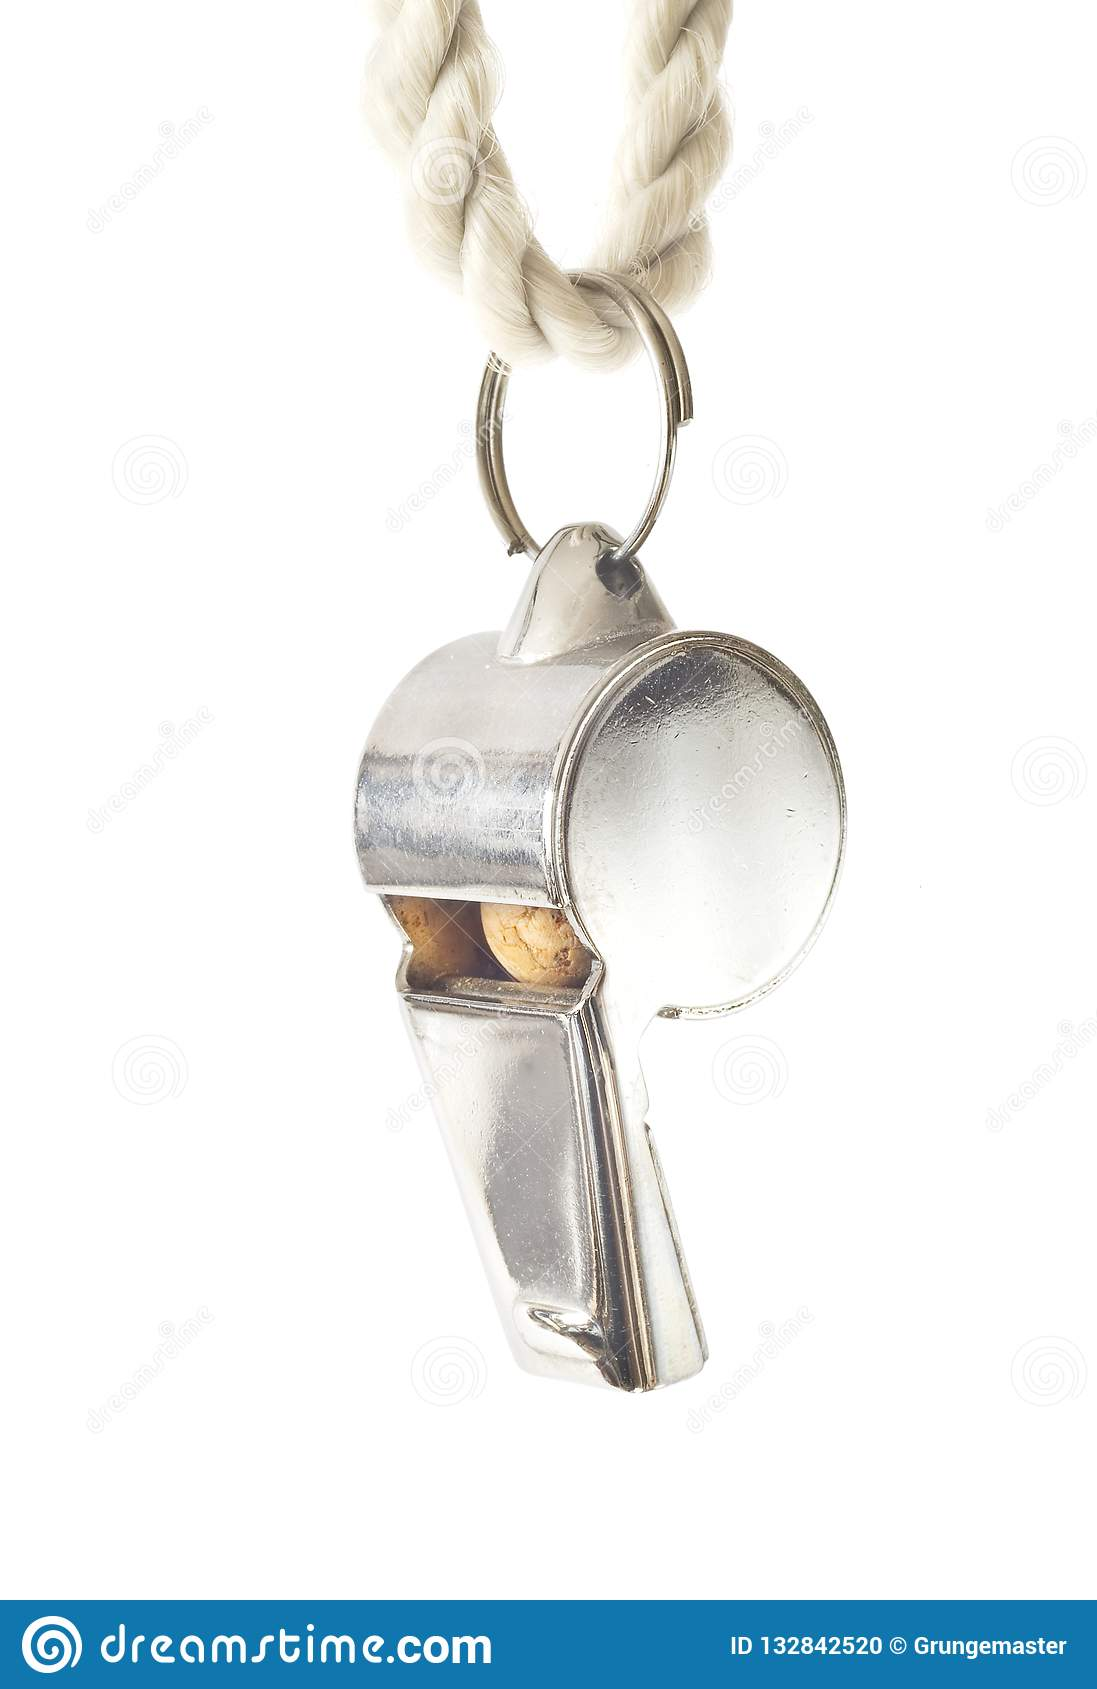 Whistle of a soccer / football referee, isolated on white